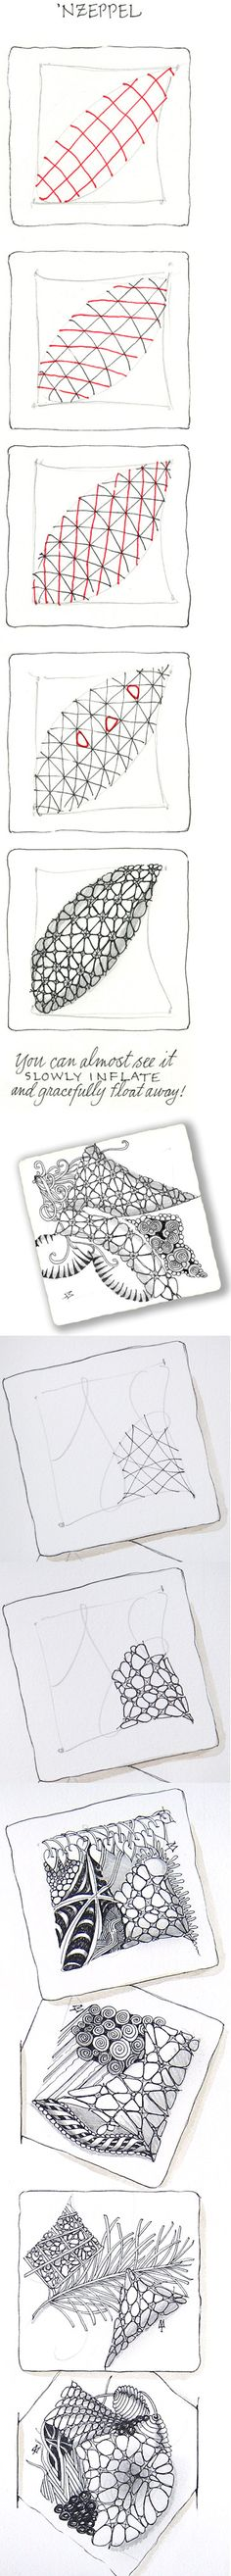 'Nzeppel ~ Official Zentangle #tangle with variation and examples by Maria Thomas #Zentangle founder